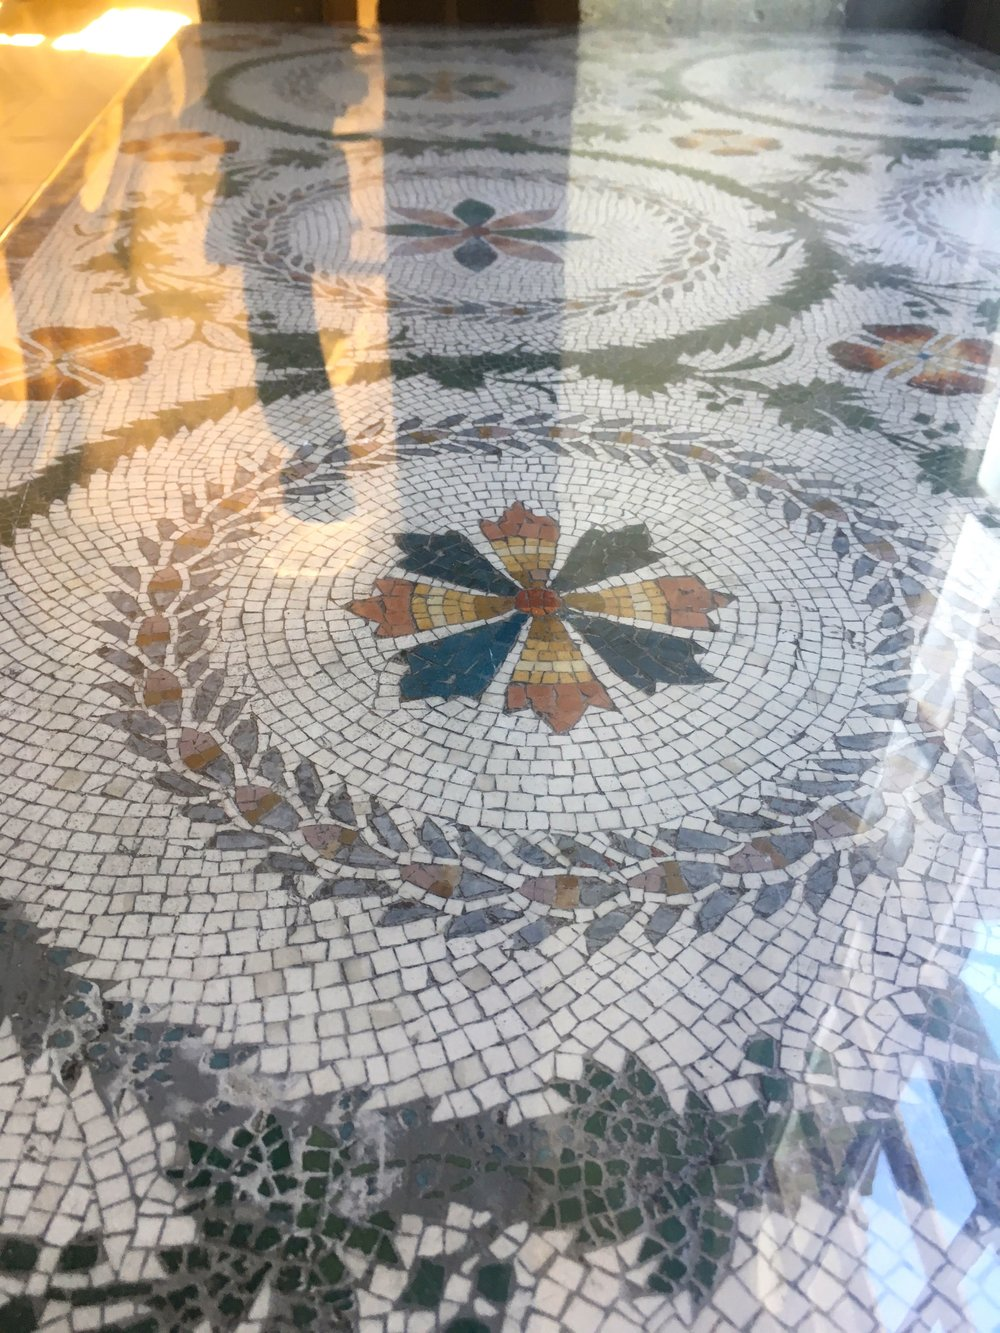 MOSAIC TABLE TOPS AT CASTLE HOWARD